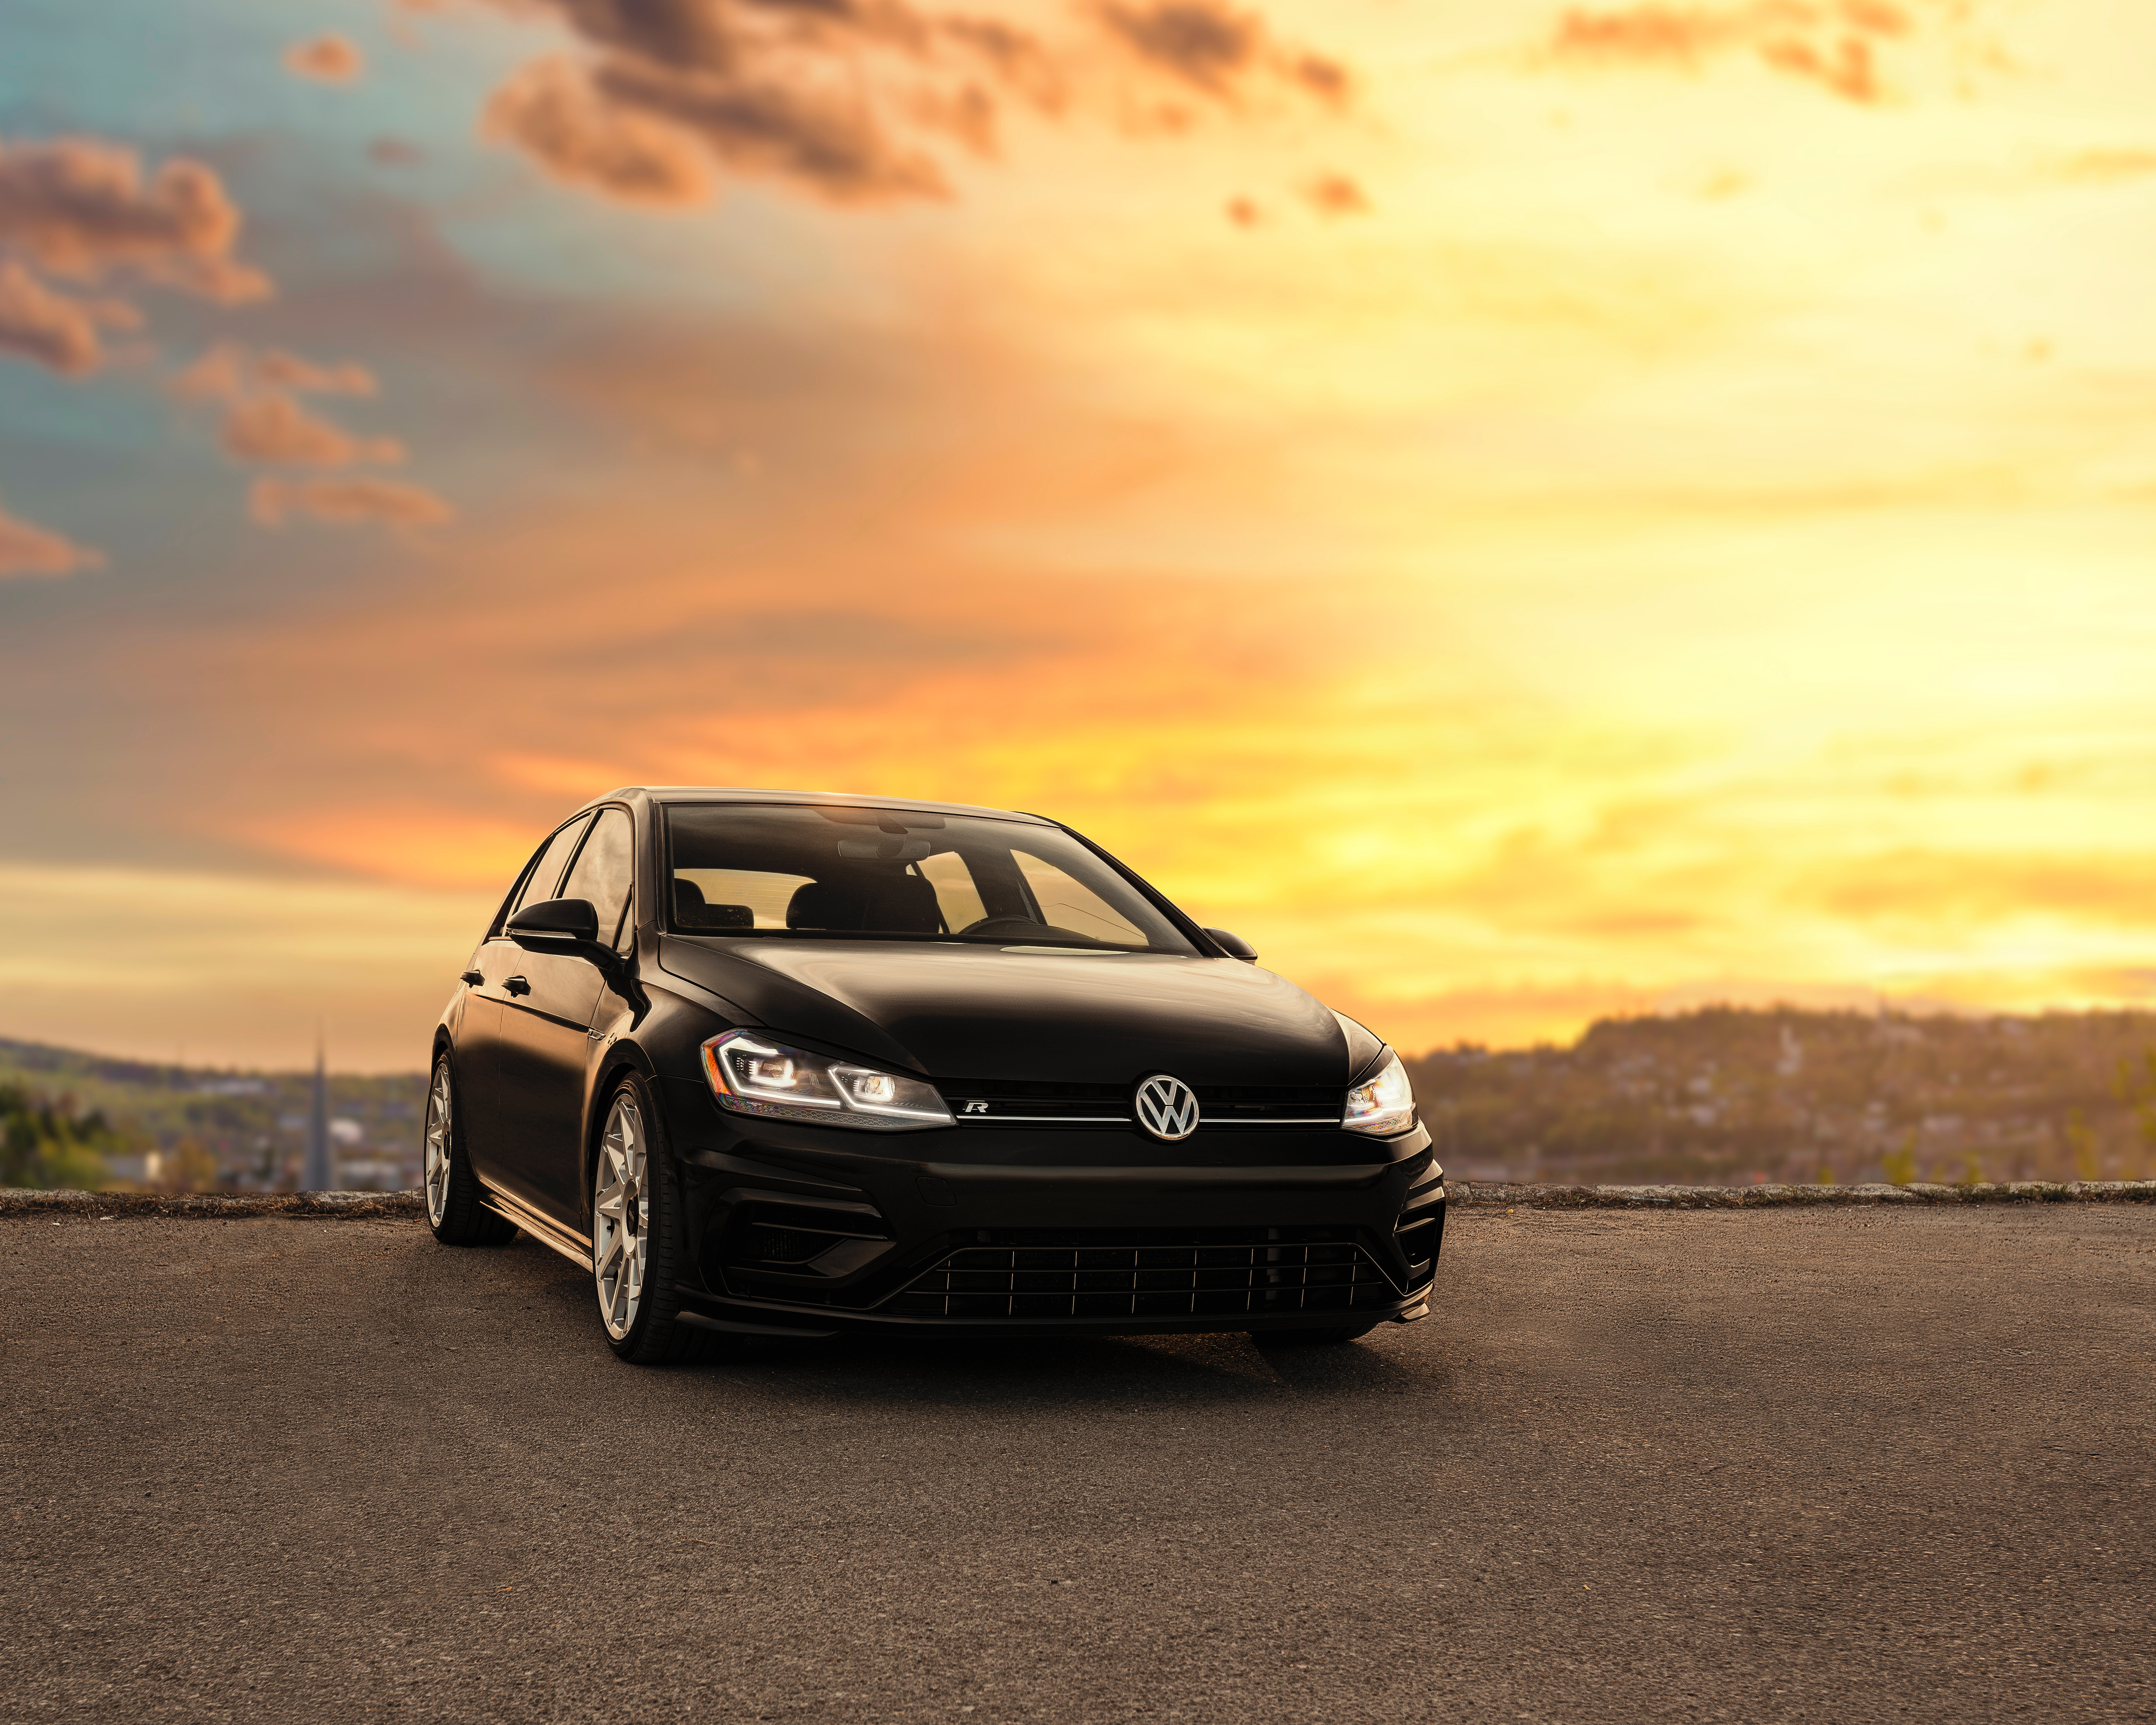 A beautiful black Volkswagen Golf with a sunset background